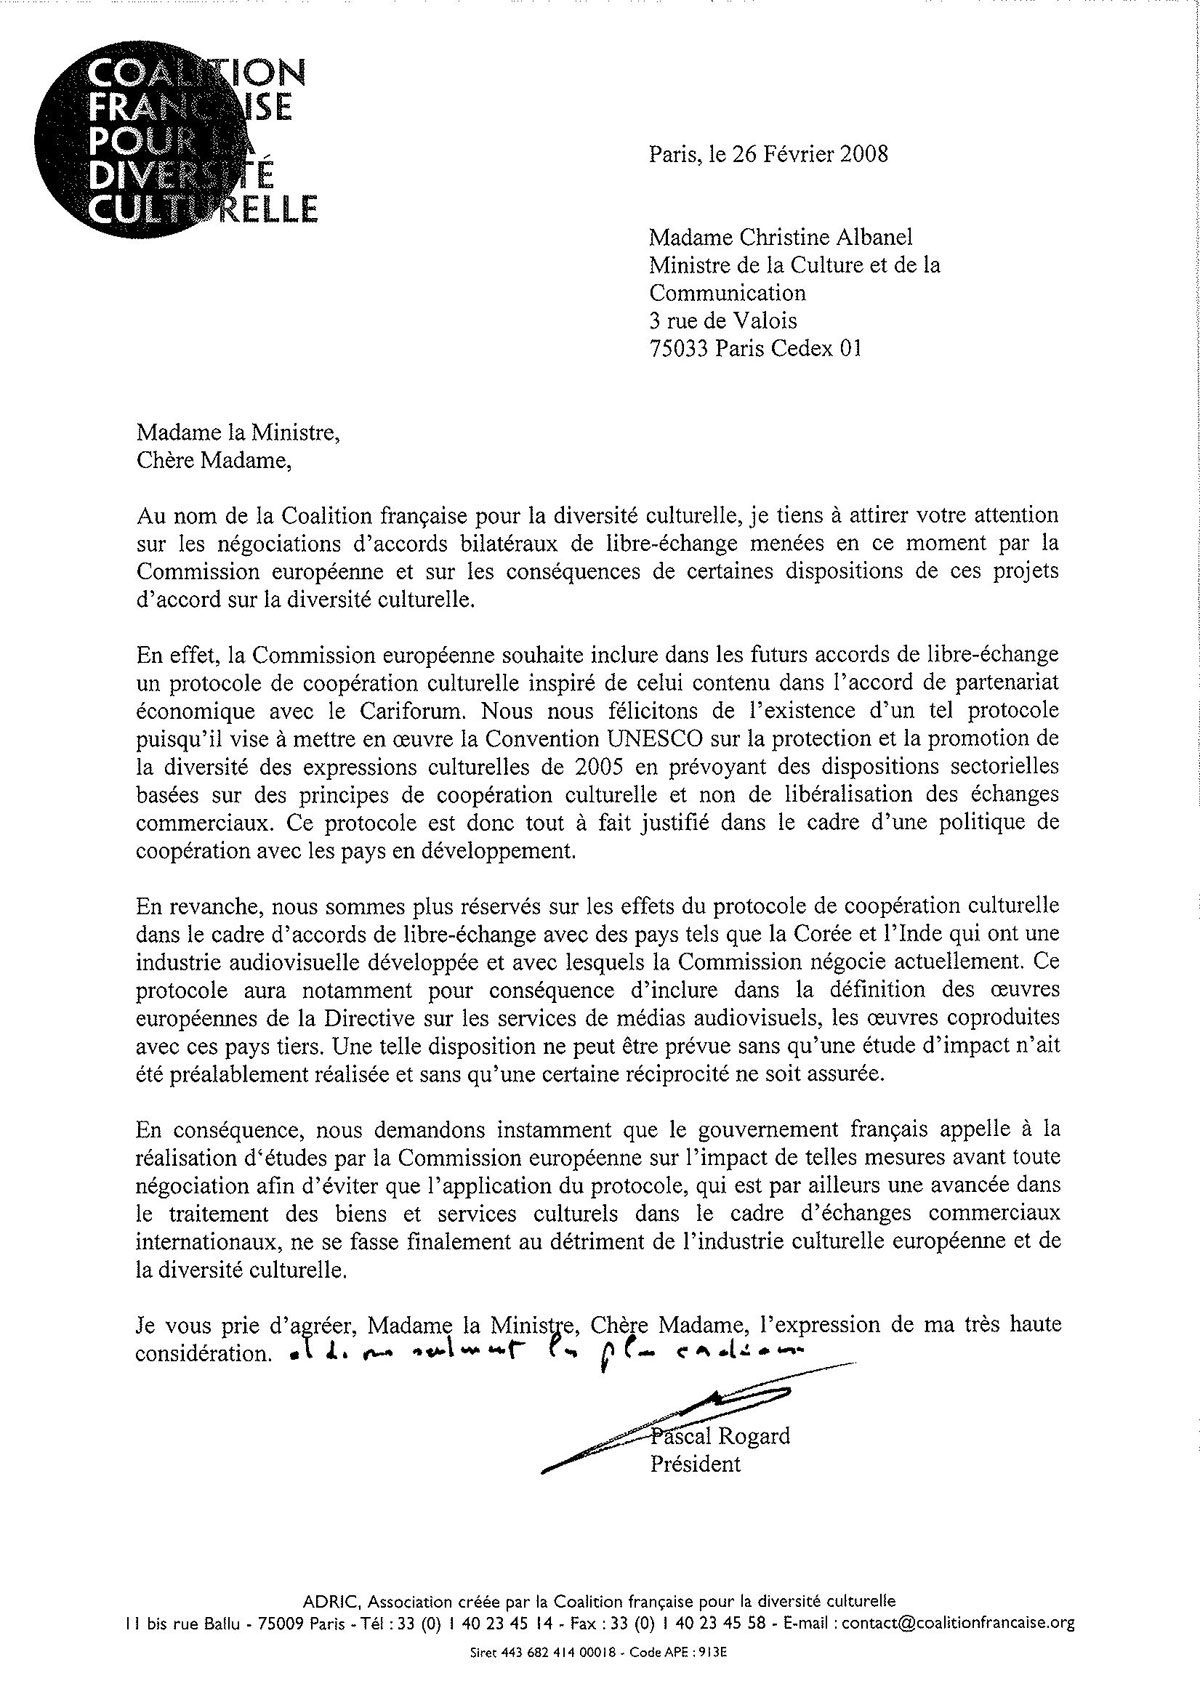 A Letter French Coalition